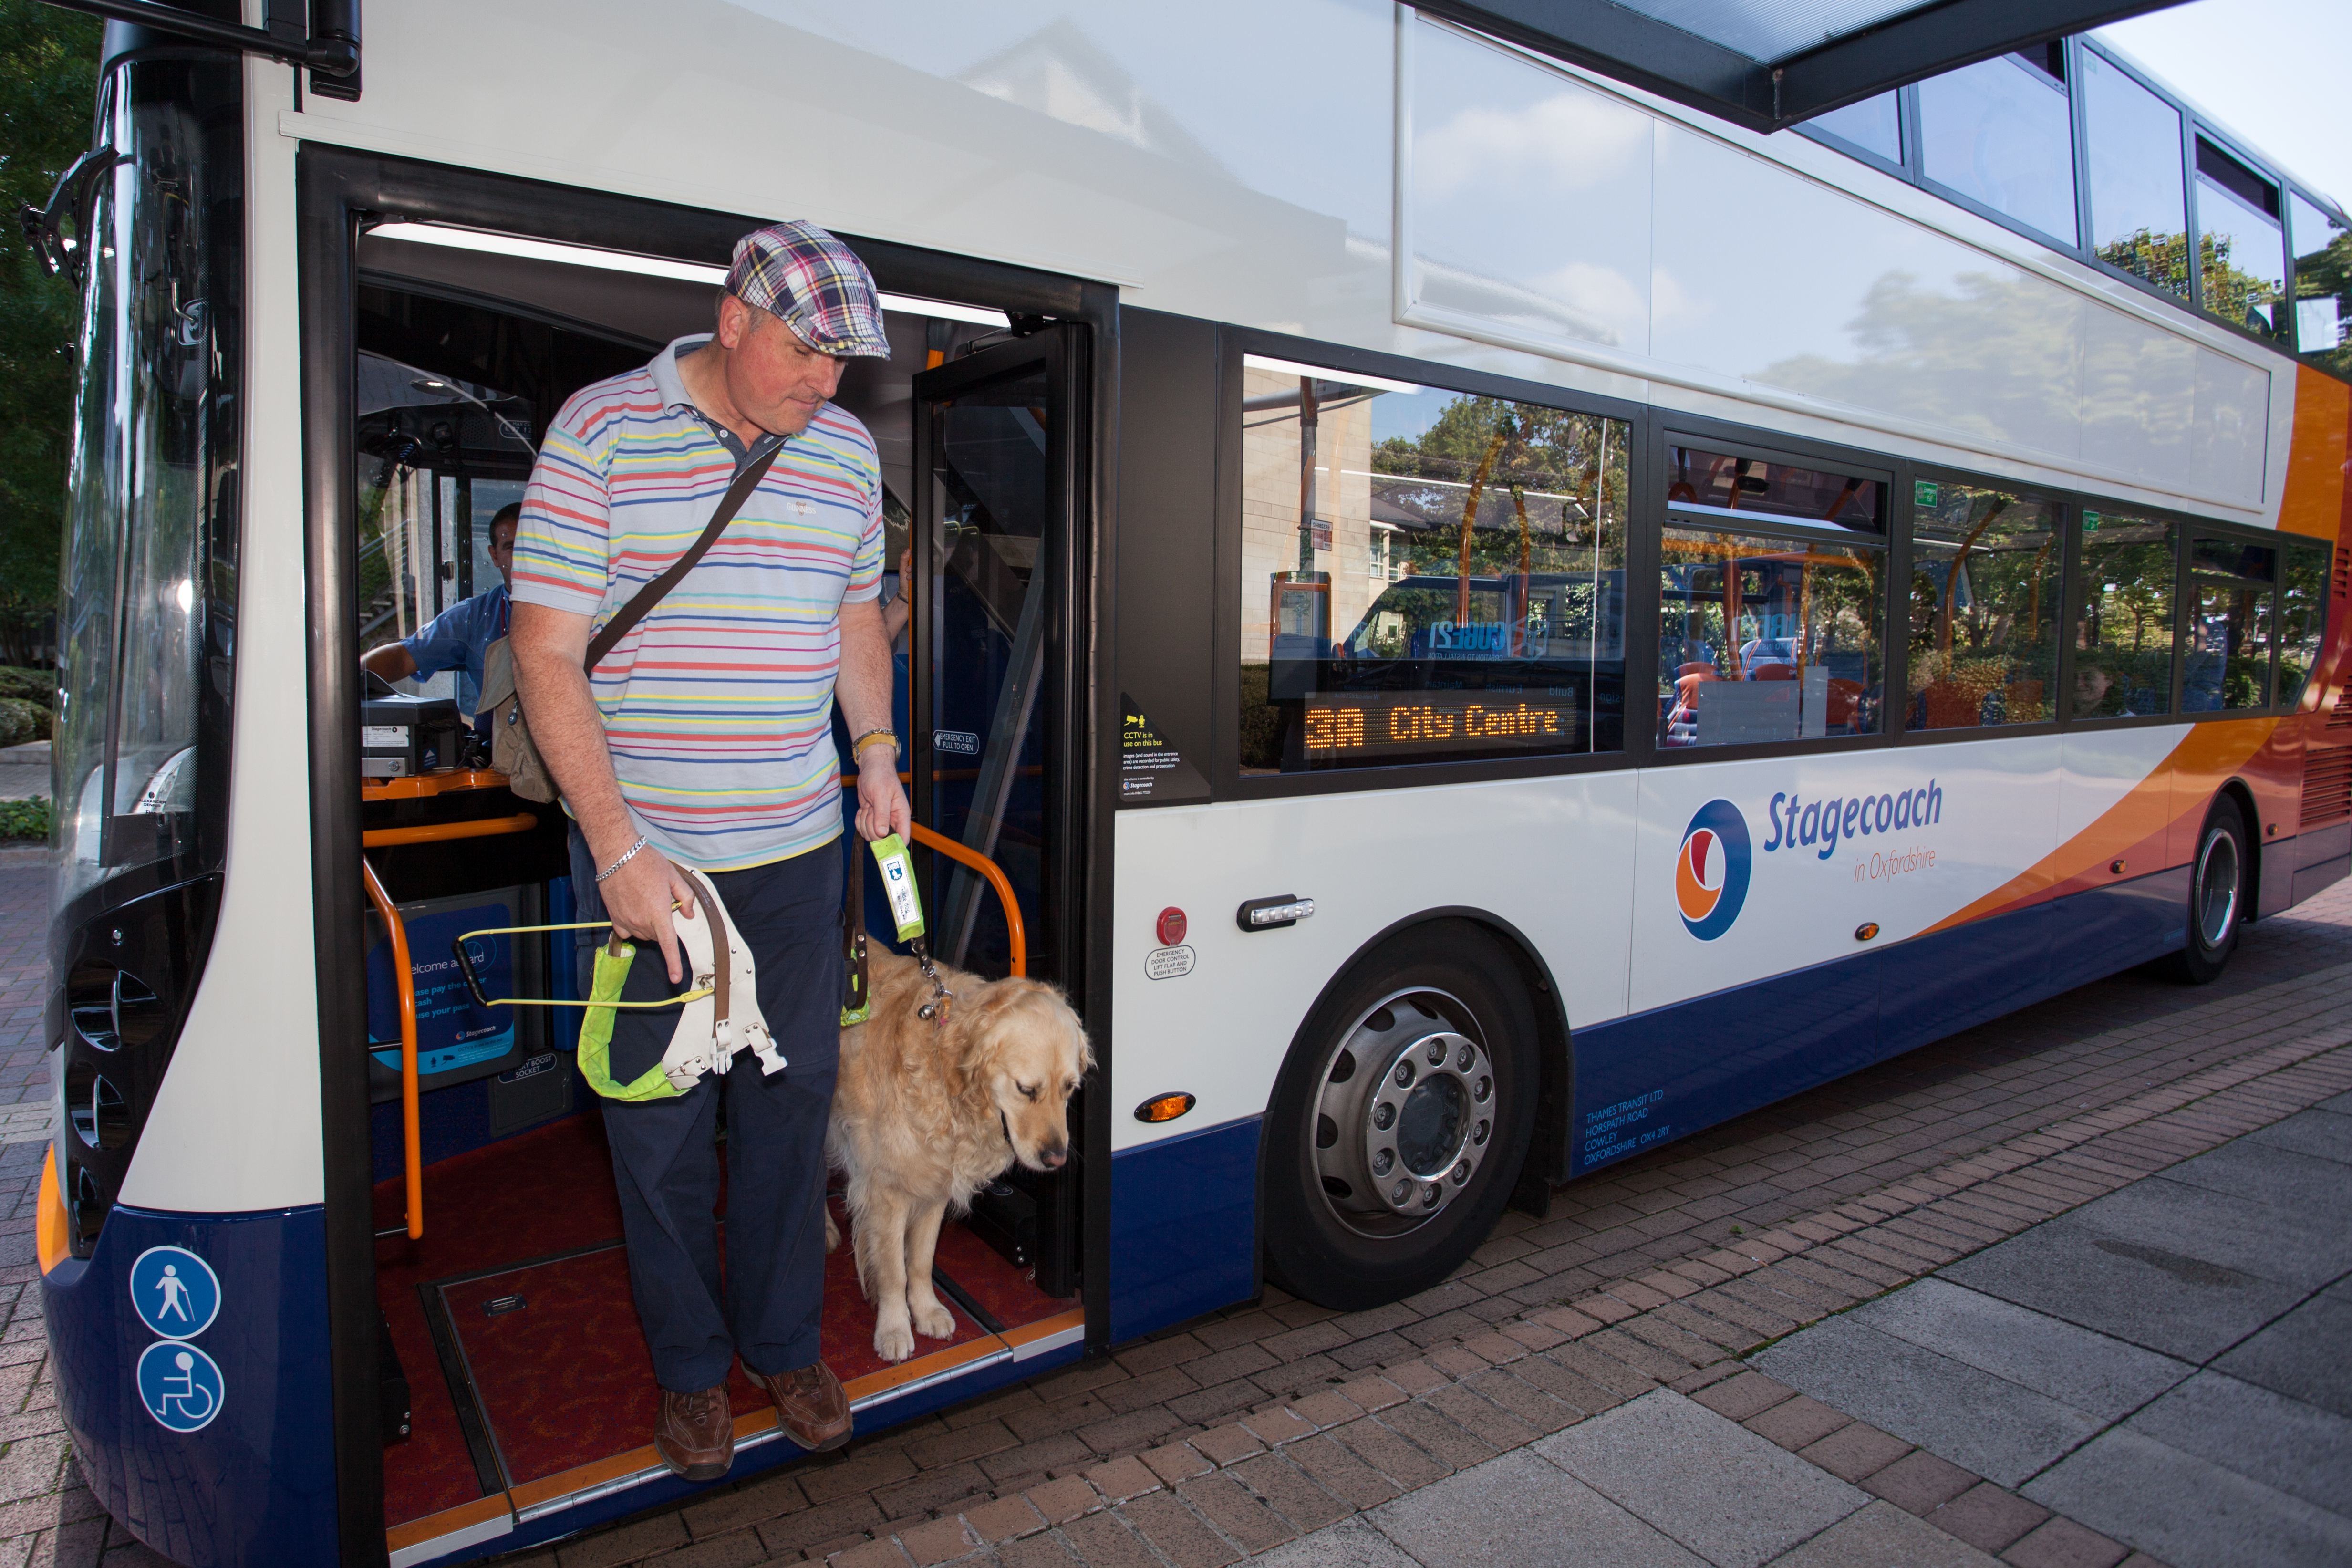 Guide Dog owner getting off bus